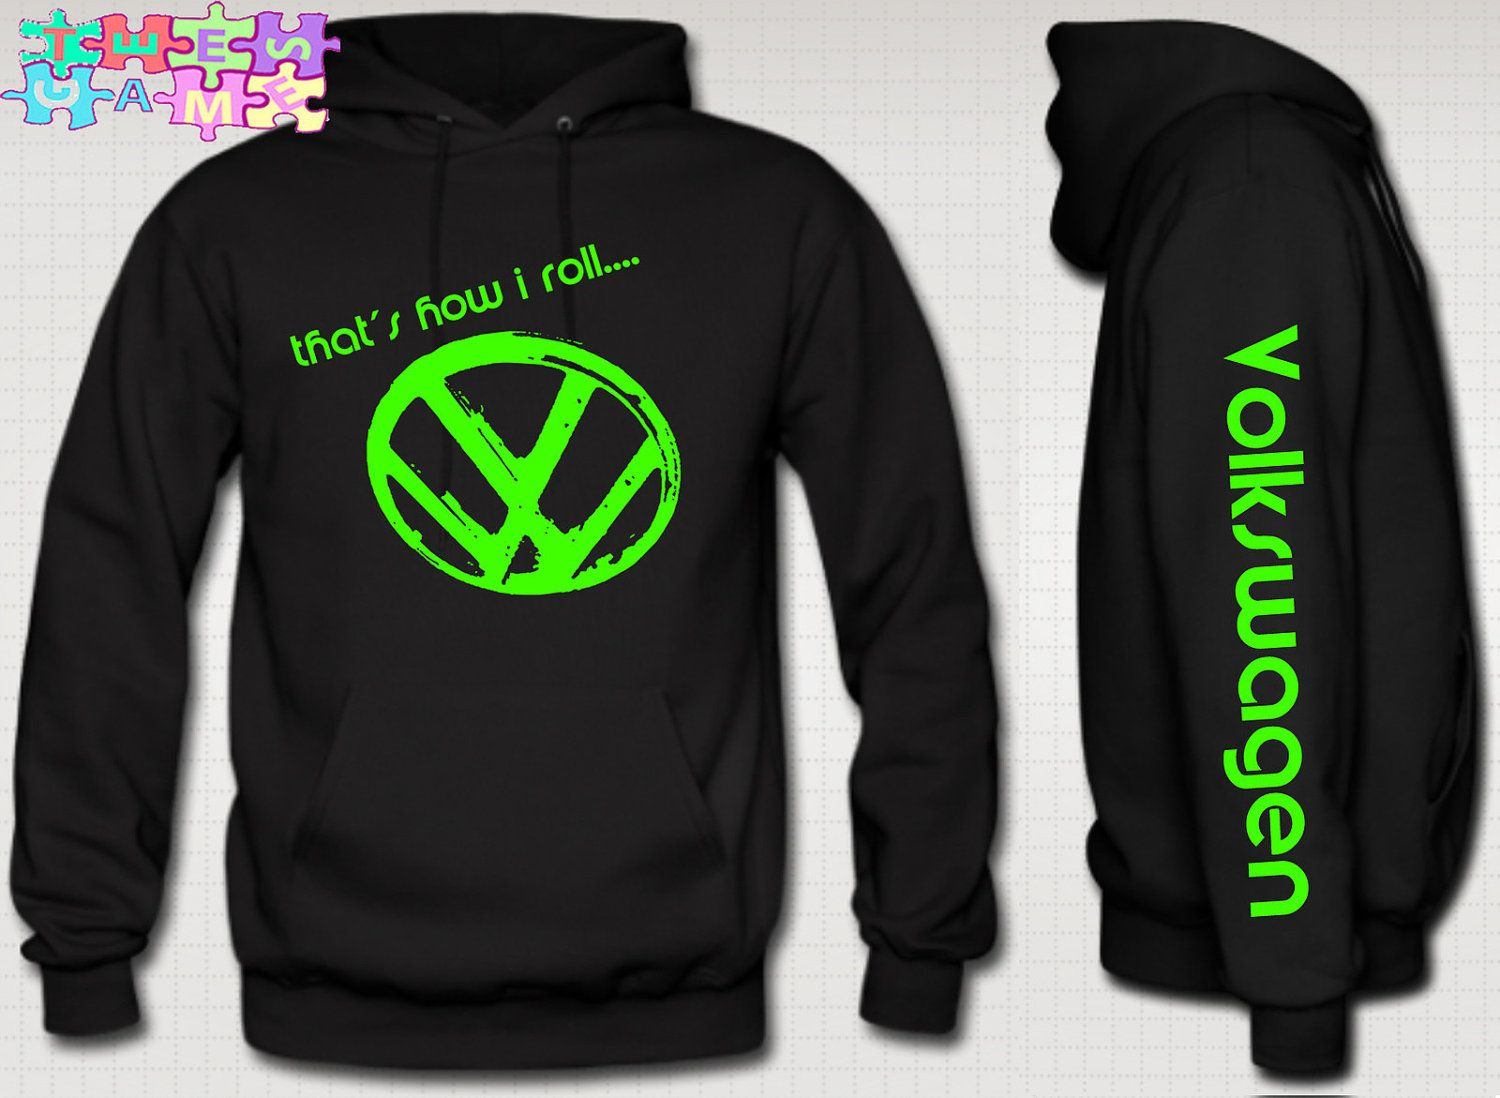 e158986a449c08 Volkswagen+hoodie+vw+thats+how+i+roll+Volkswagen+vw+by+TeesGame